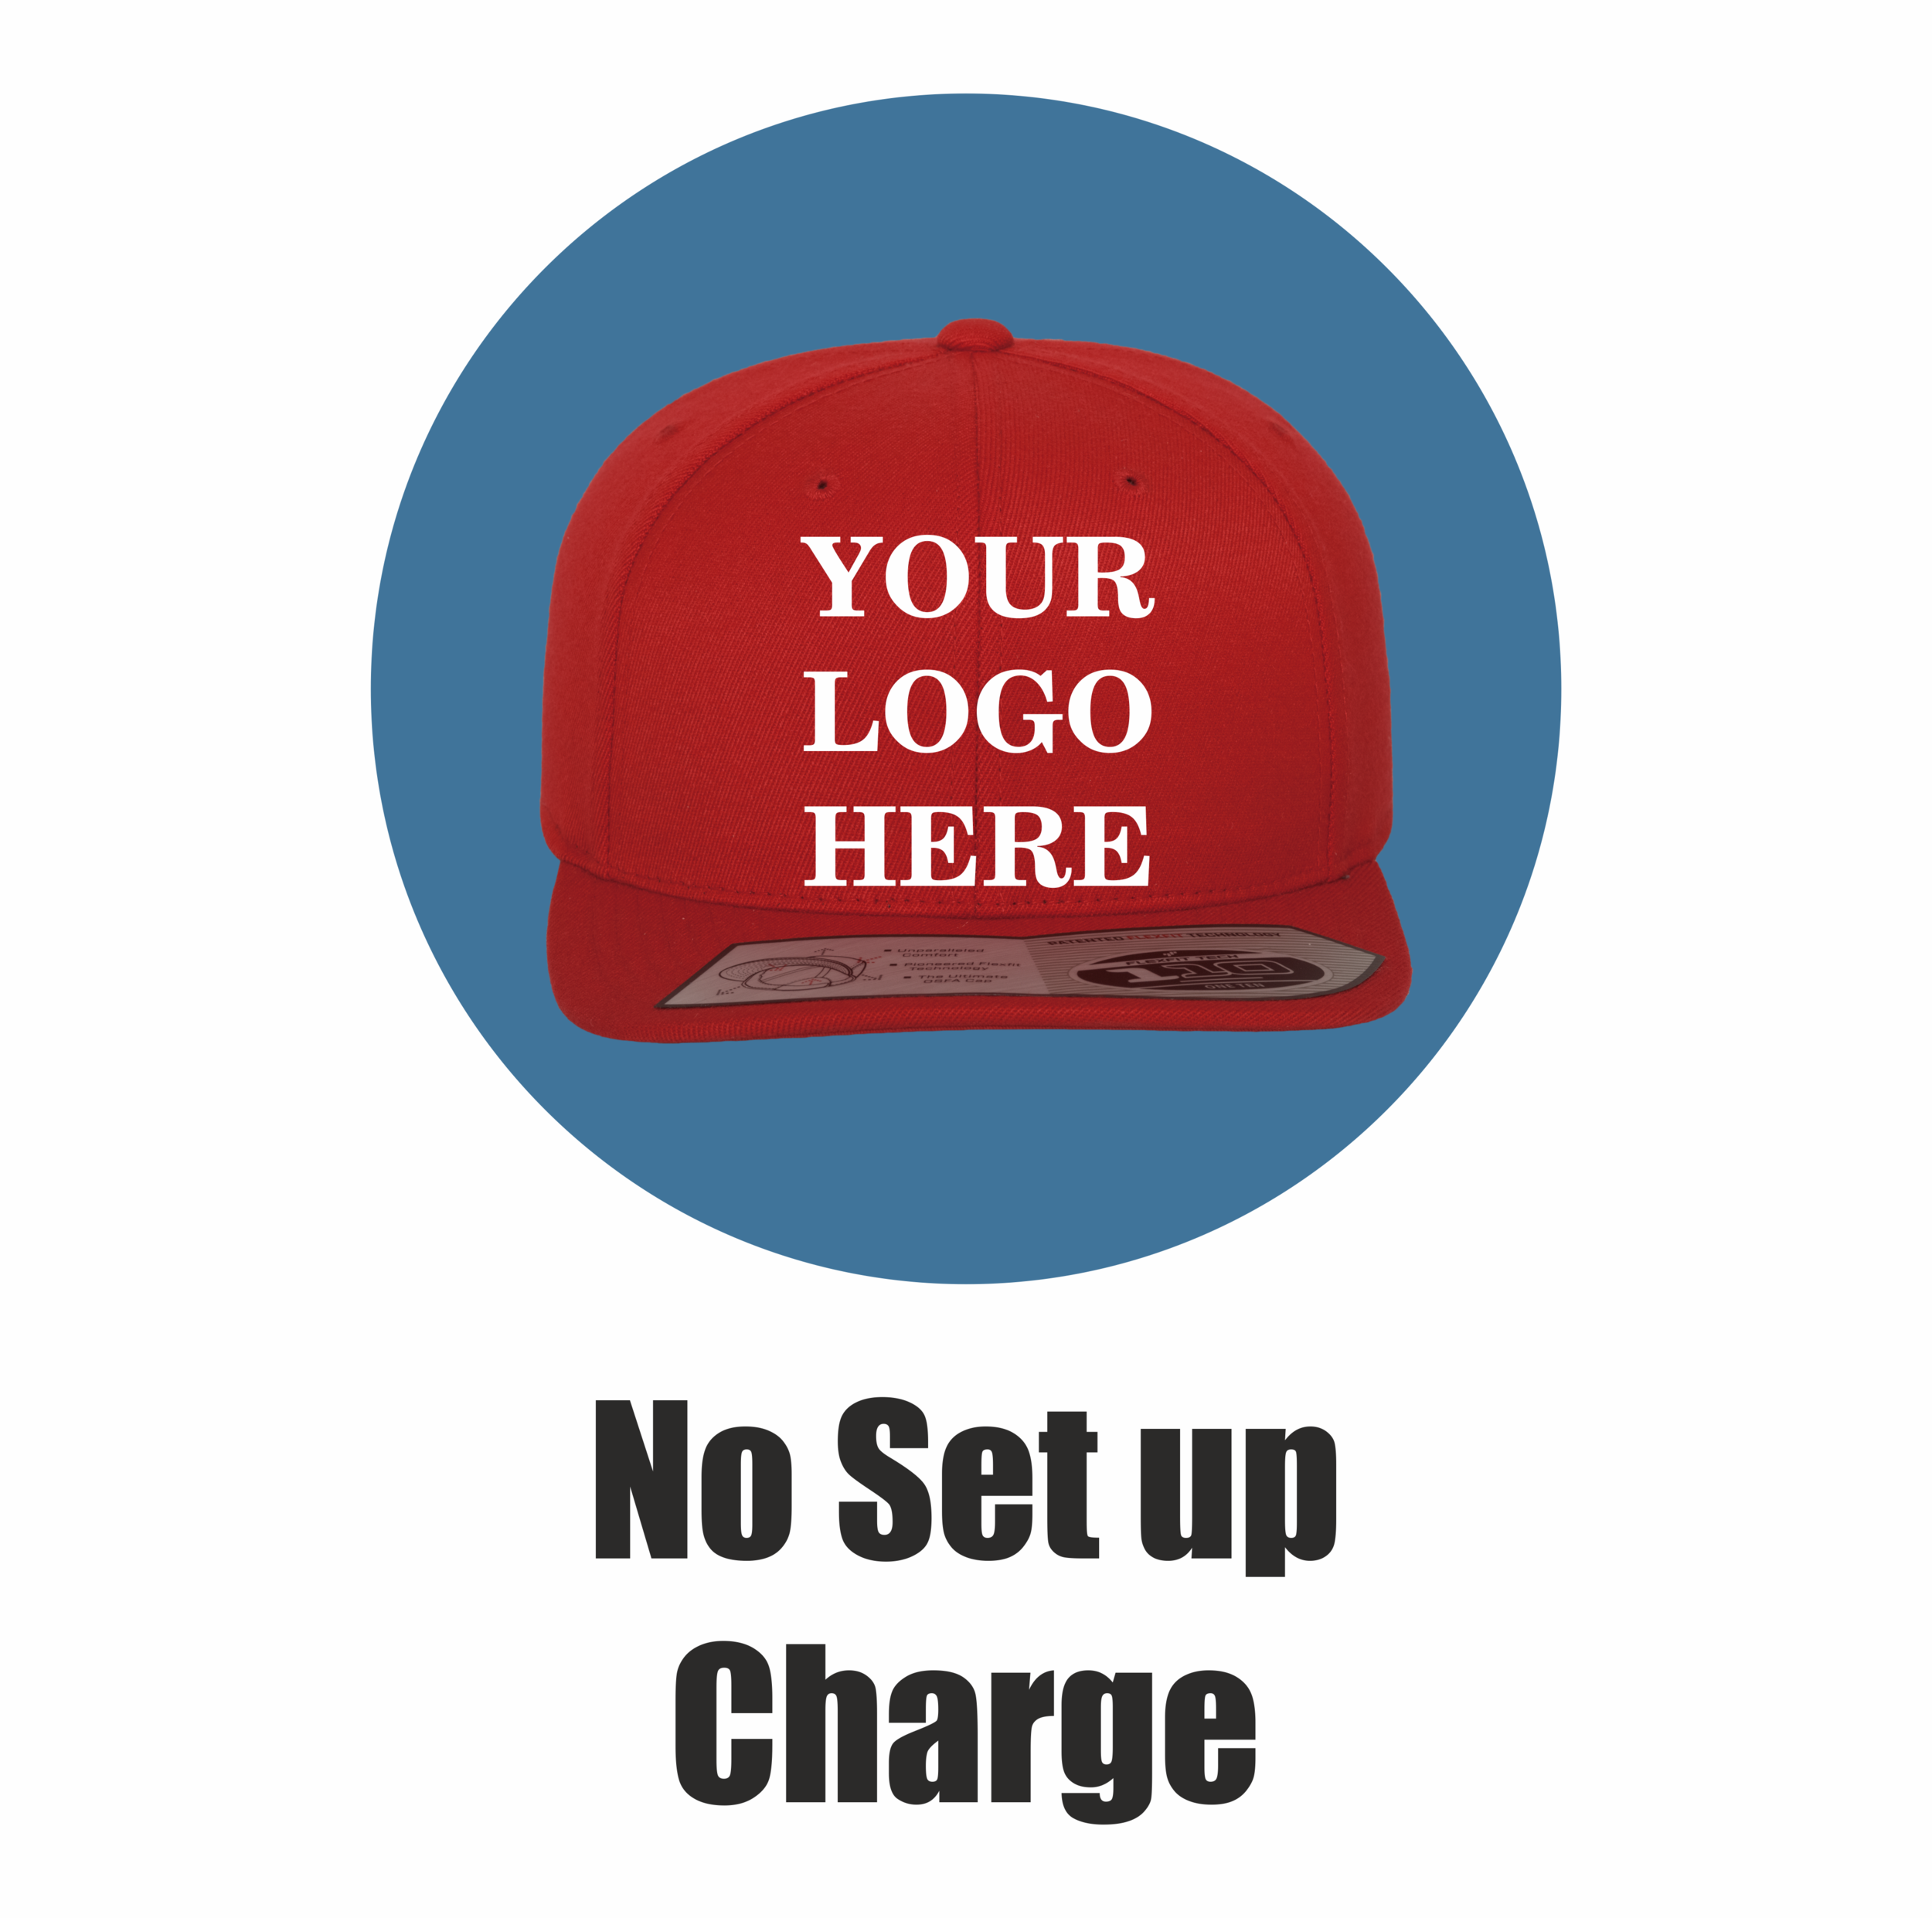 Yupoong Flexfit by London Snapbacks No set up charge.png